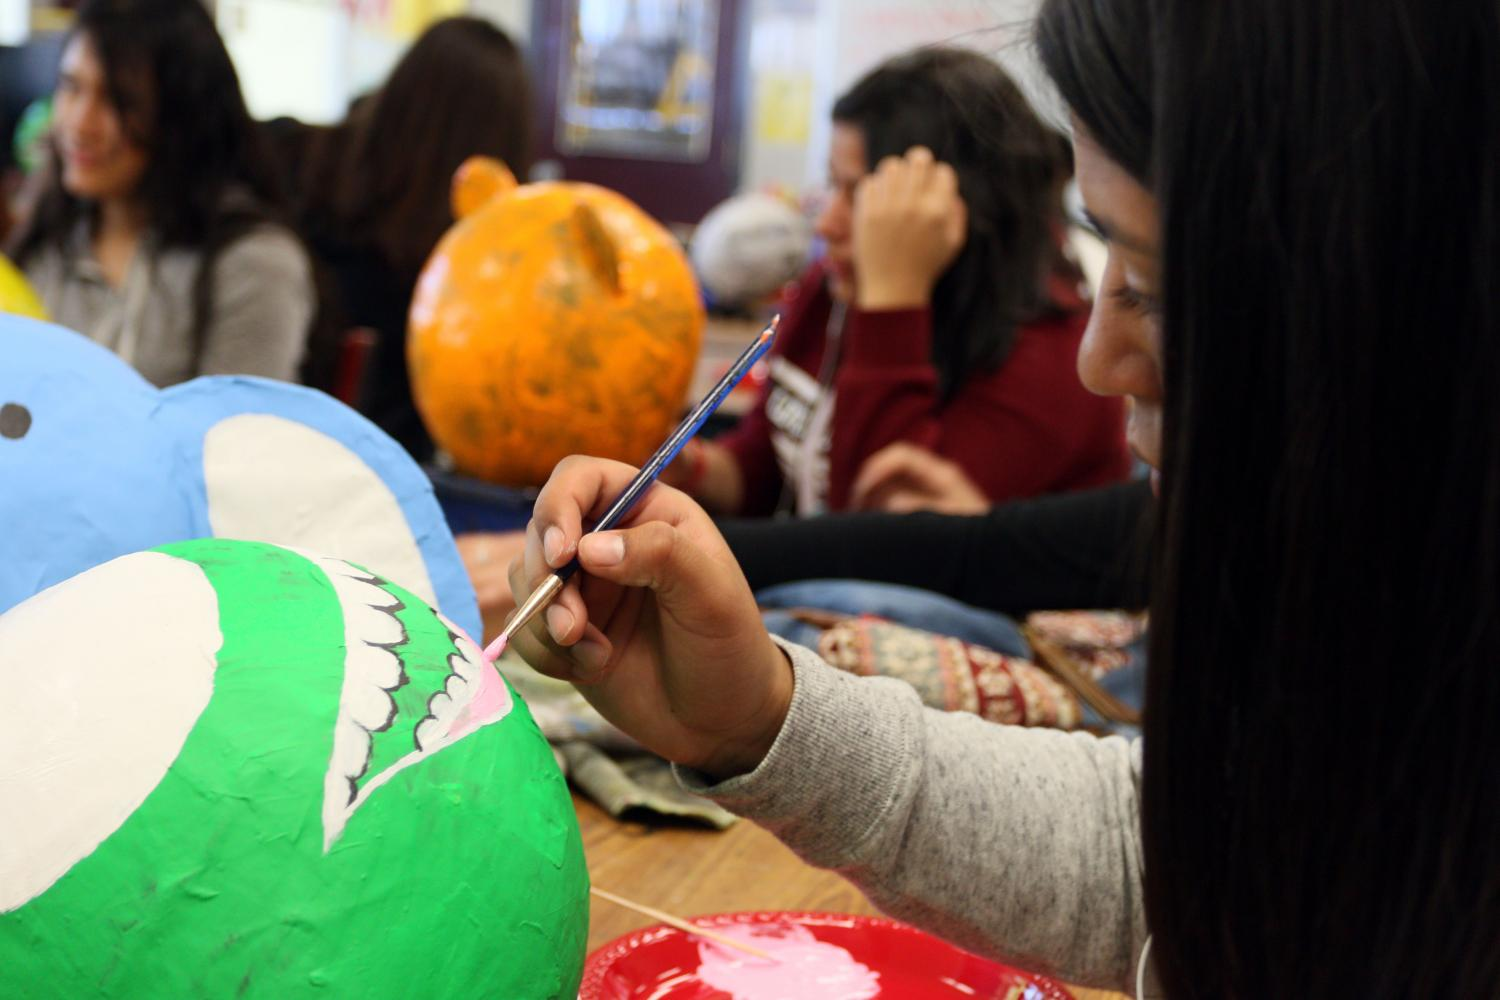 WEEKLY GALLERY: Art Class Brushes Up On Their Projects